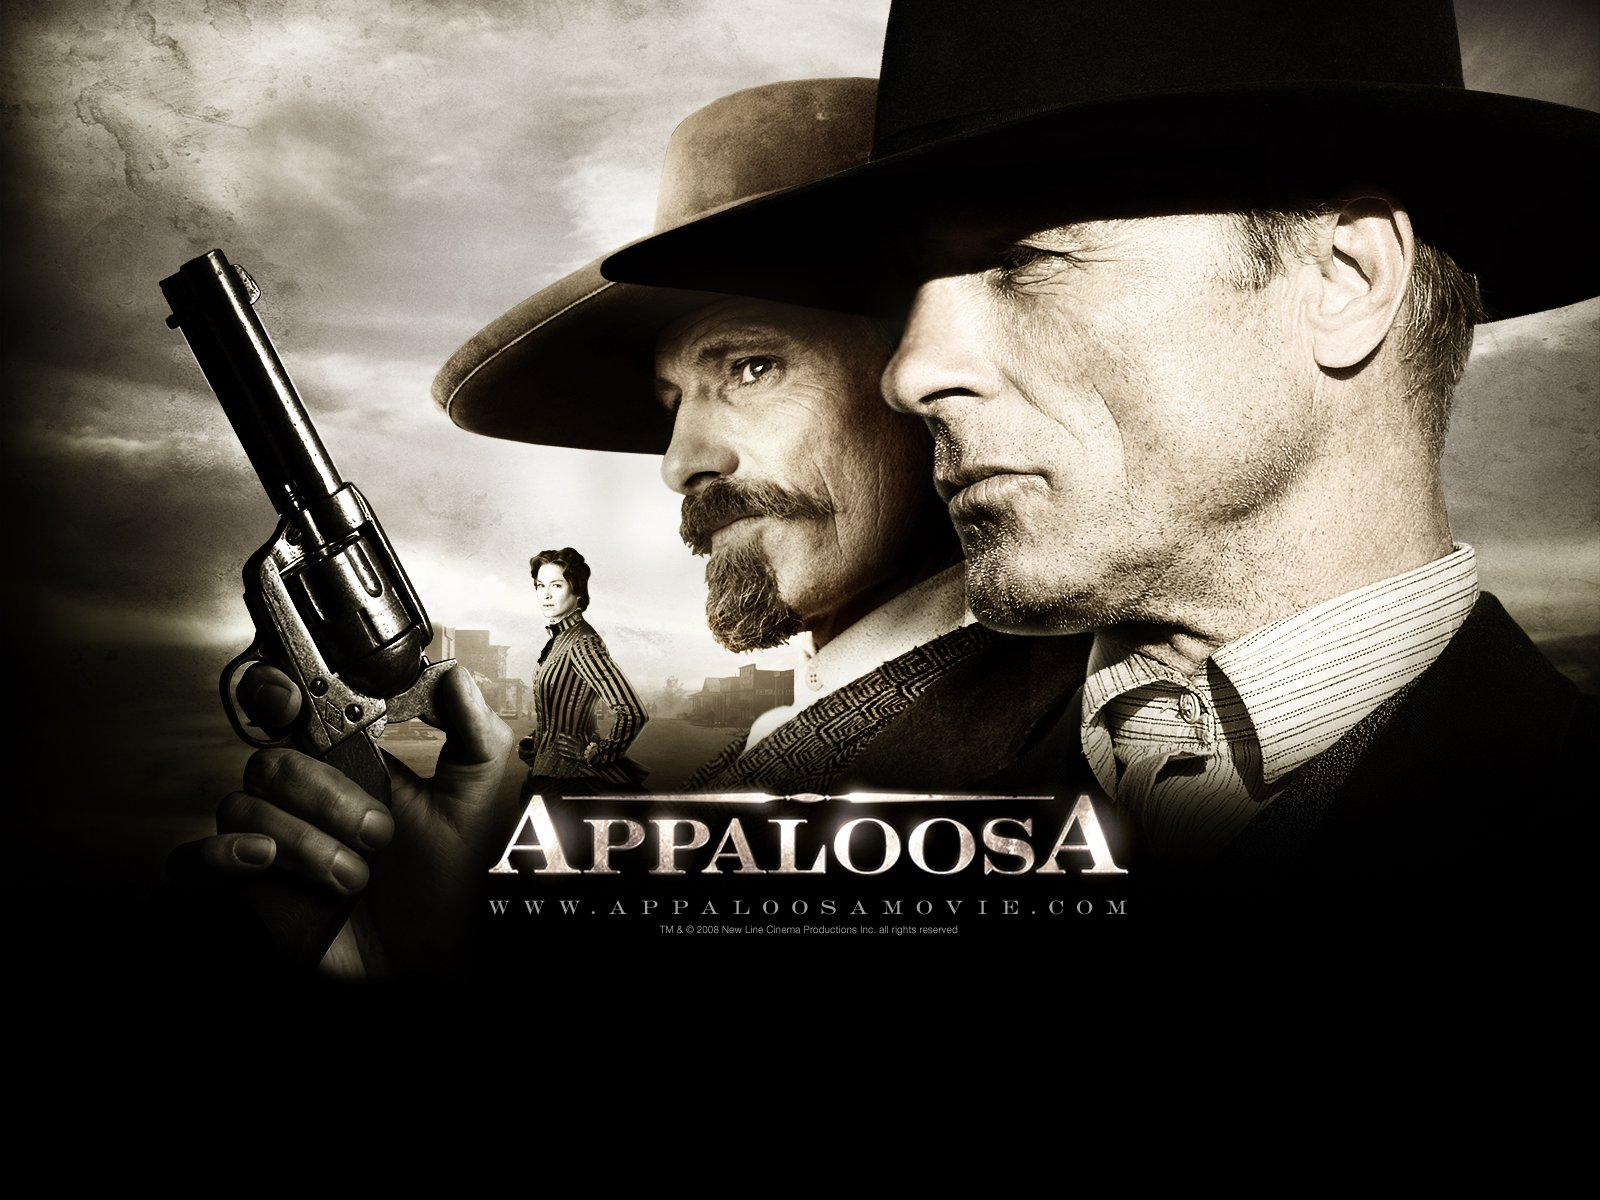 Appaloosa (2008) | Download Free MOVIES from MEDIAFIRE Link